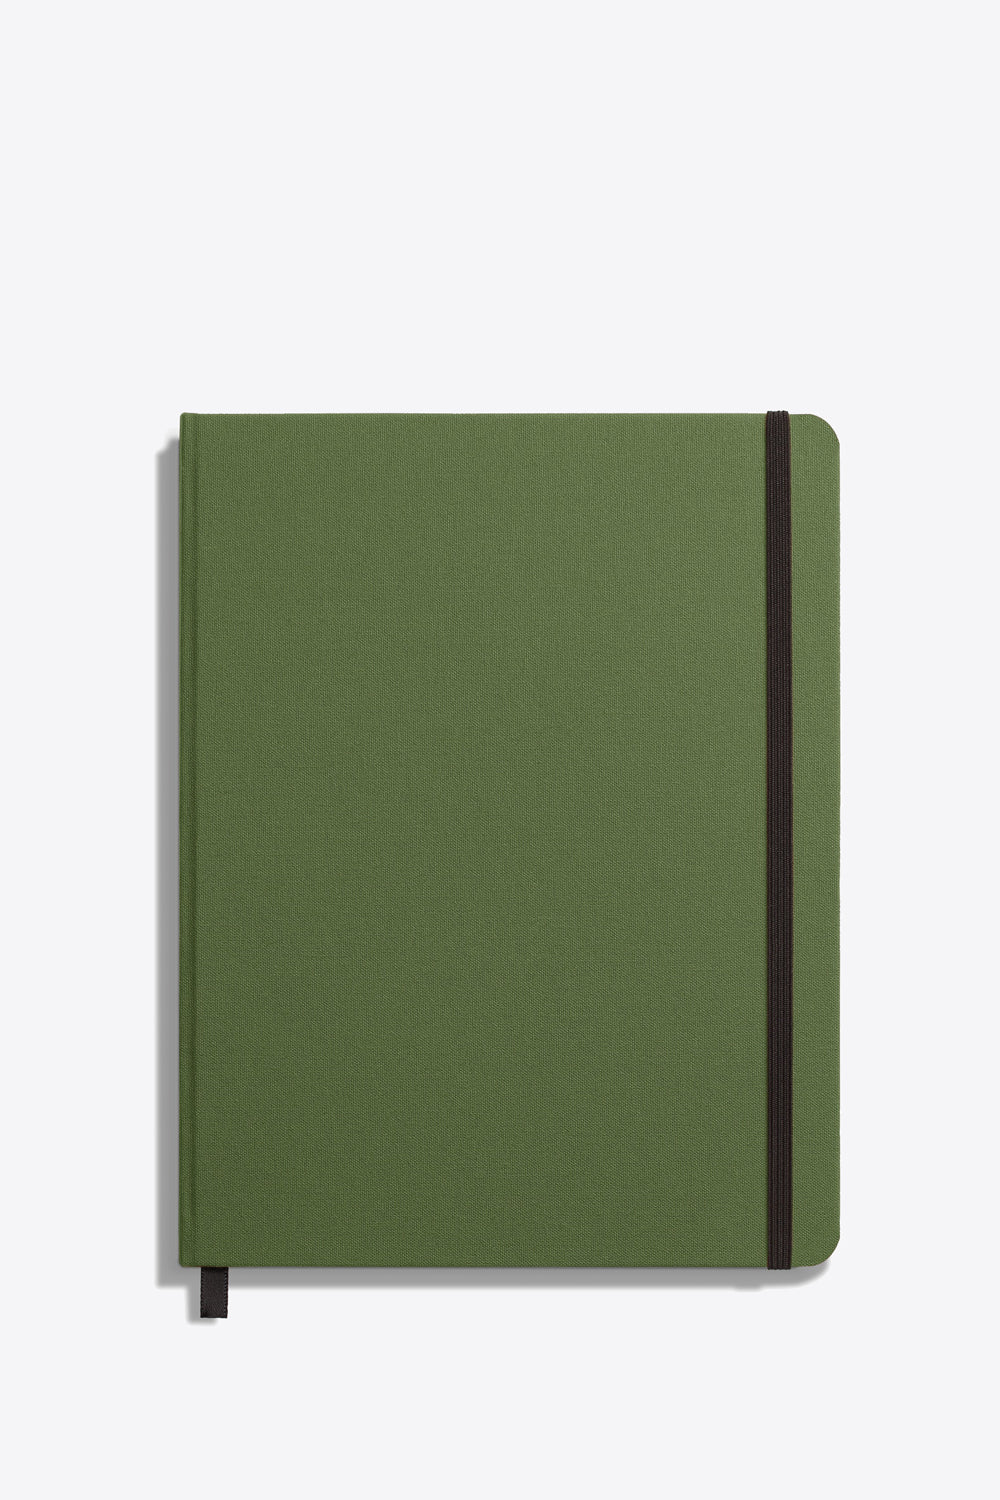 Large Hard Ruled Journal in Olive